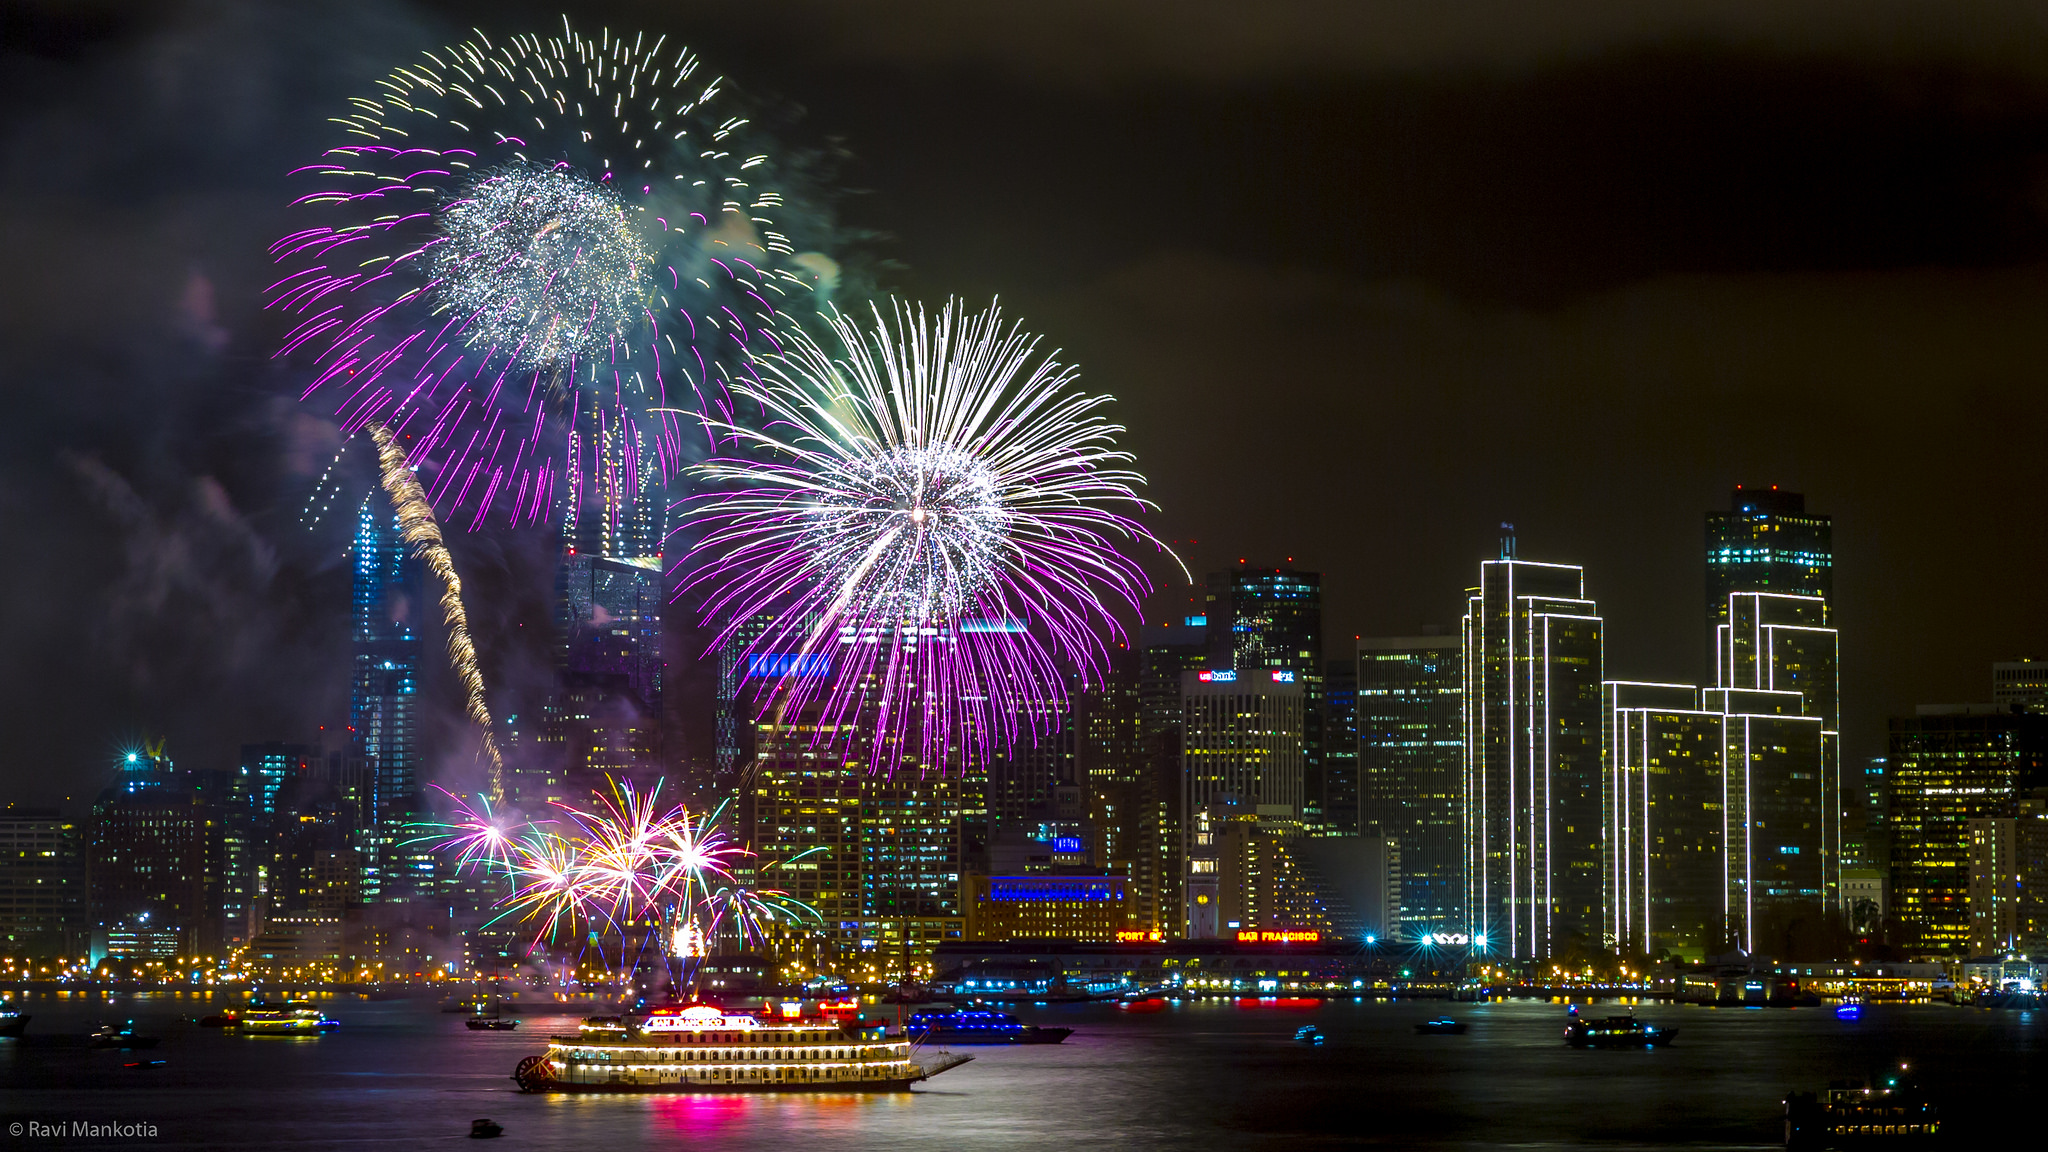 A fog-free 4th of July fireworks celebration in San Francisco